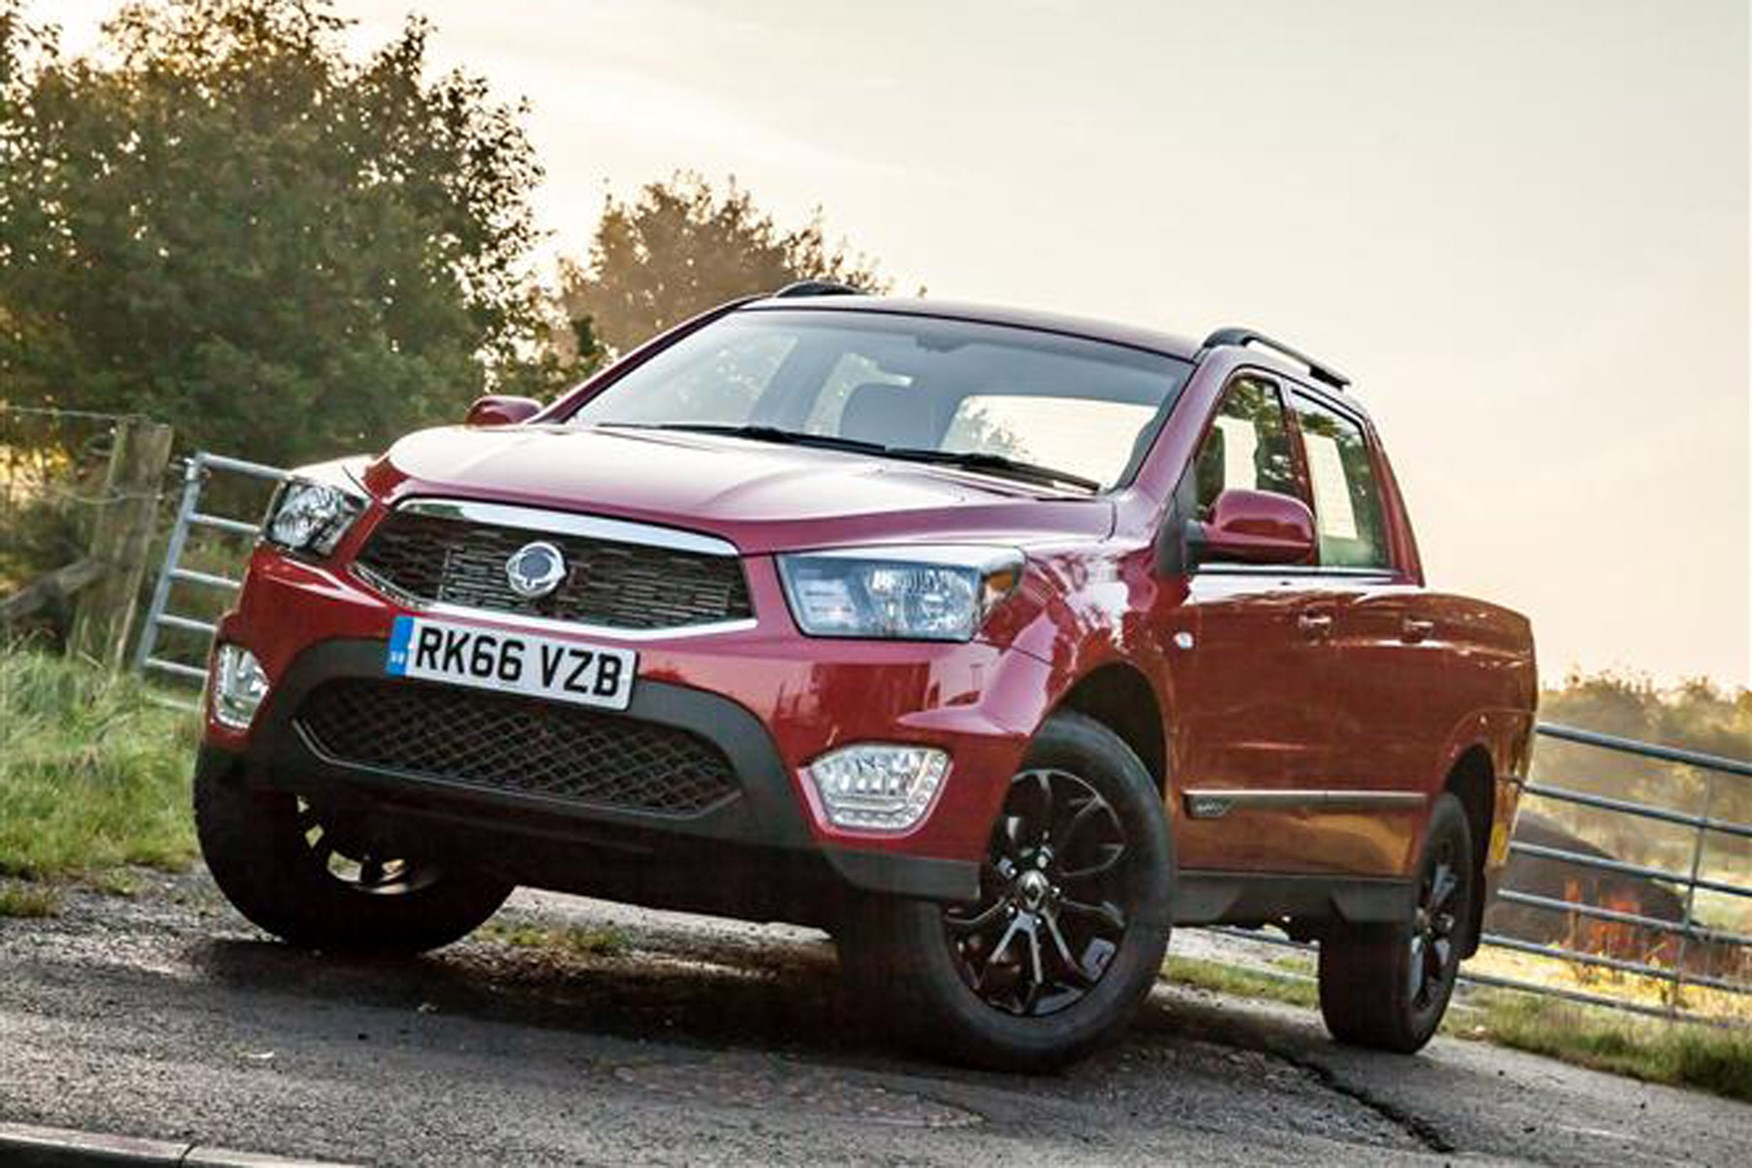 SsangYong Musso full review on Parkers Vans - front exterior